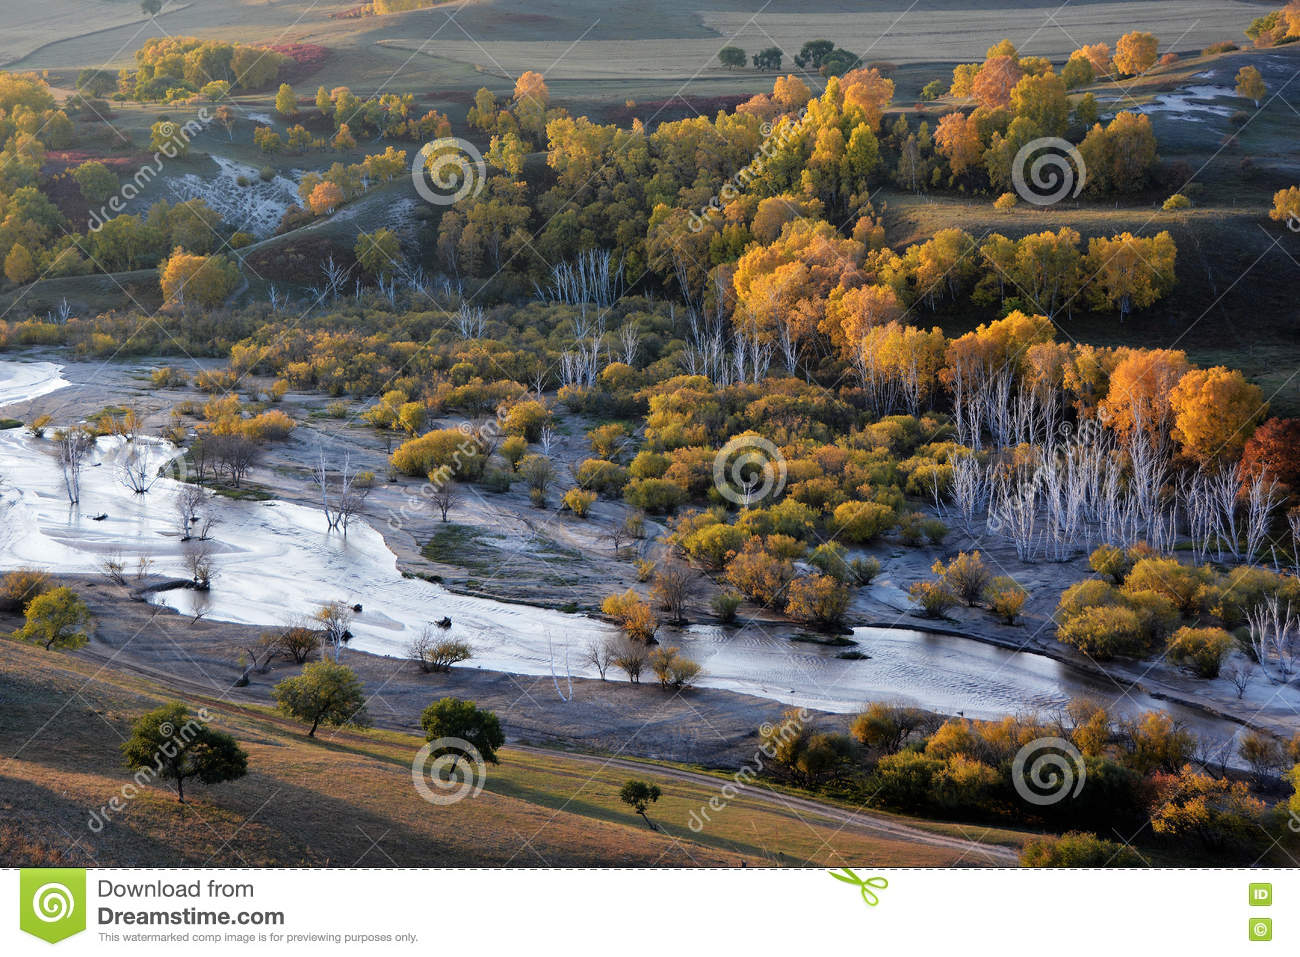 Autumn field with stream and golden birch trees